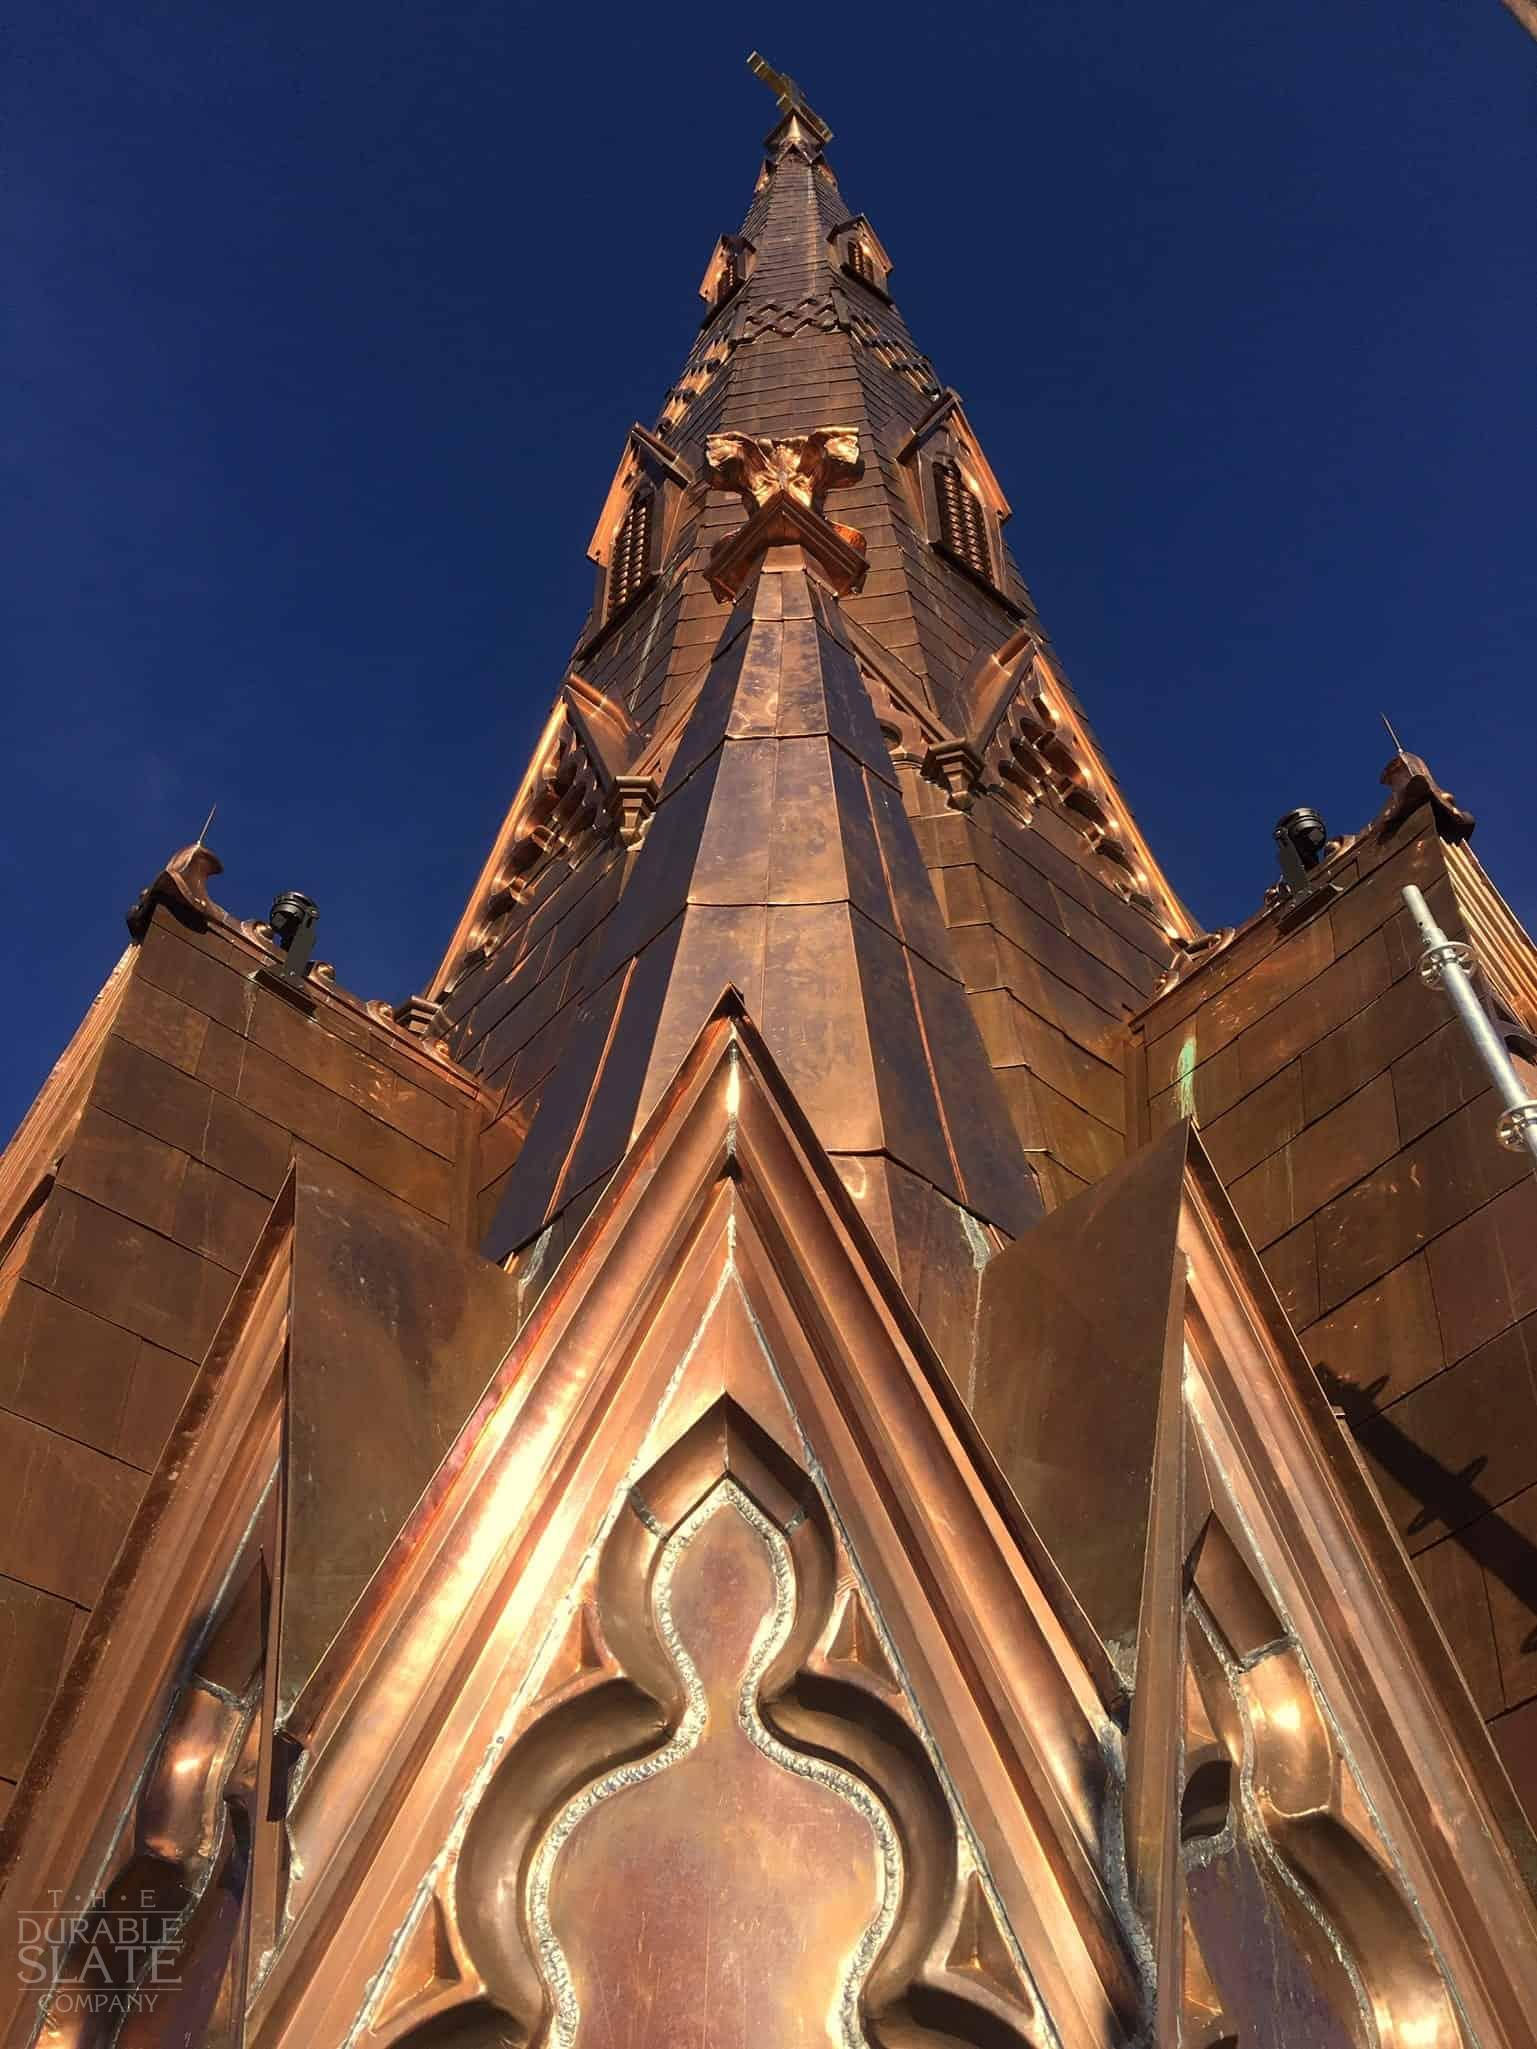 Steeple Square, Dubuque, IA copper spire as seen from below